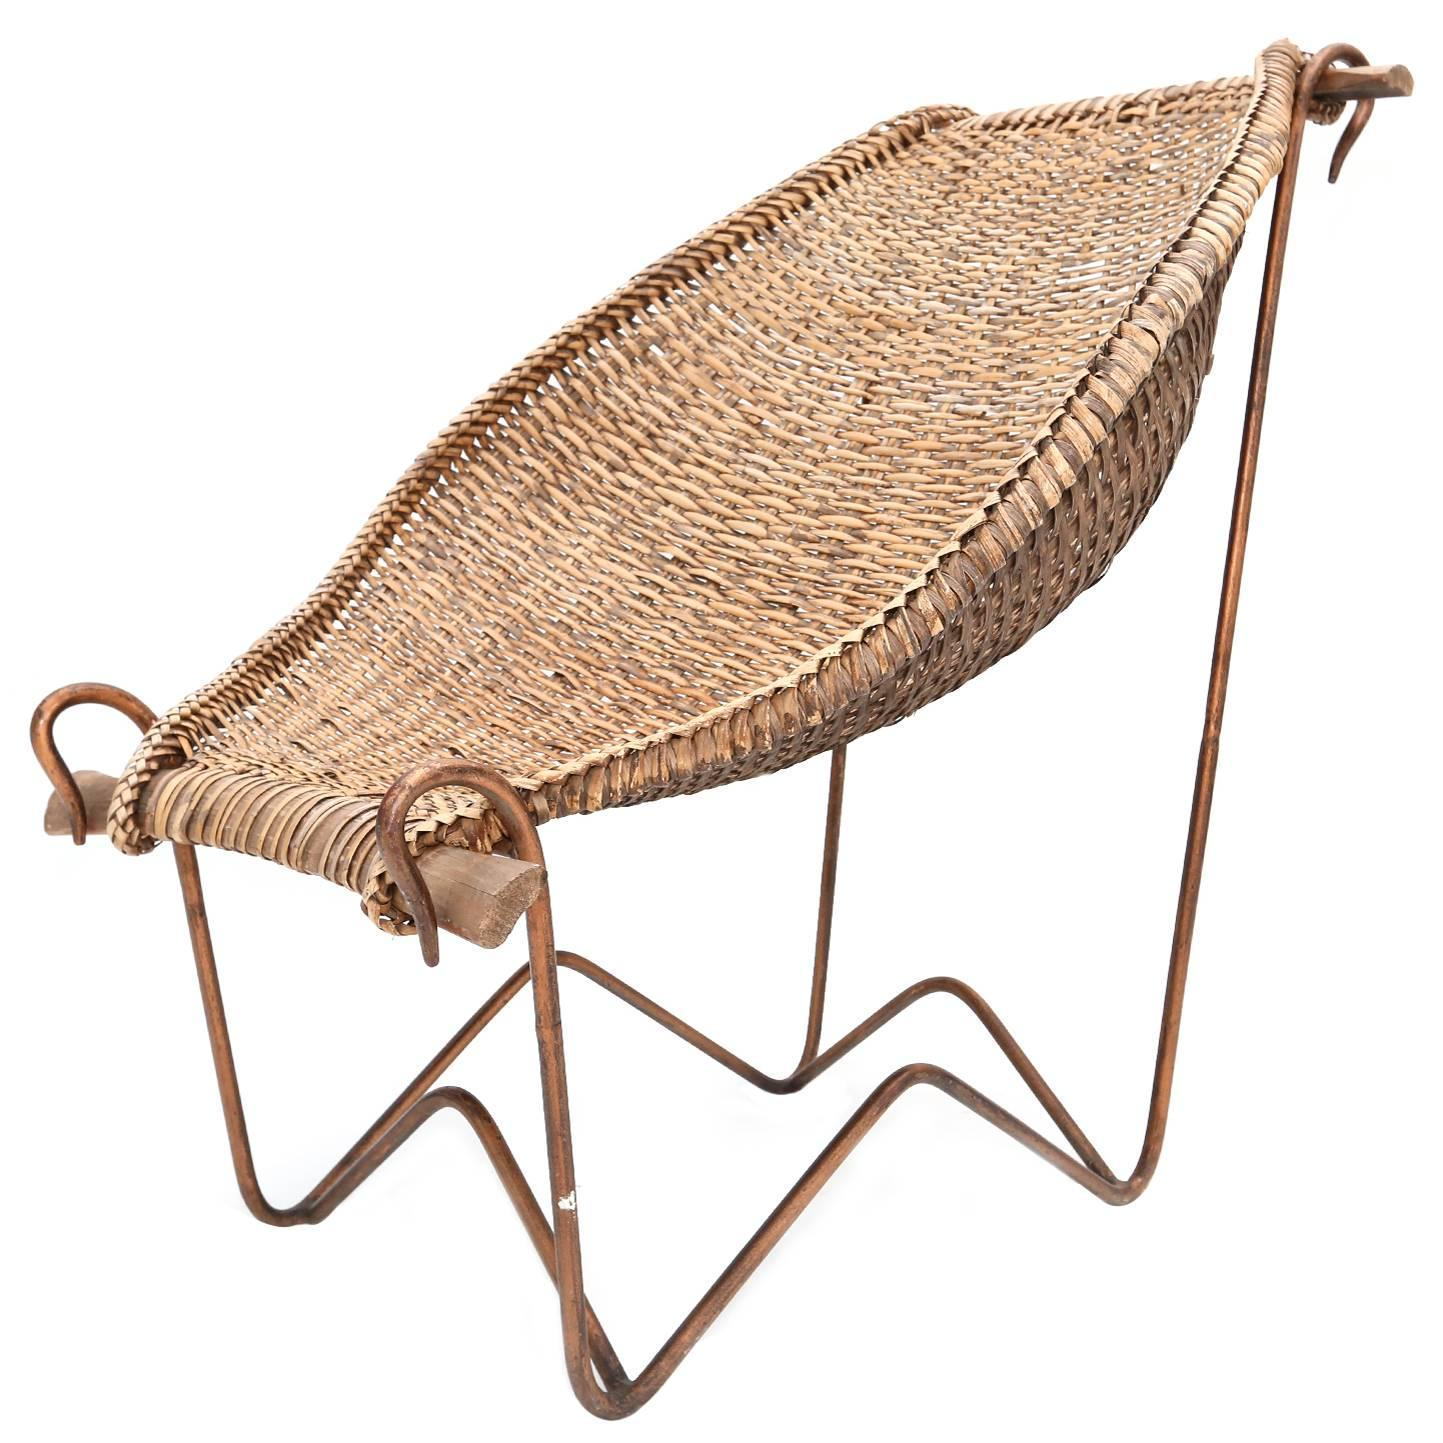 Duyan Wicker Chair For Sale at 1stdibs